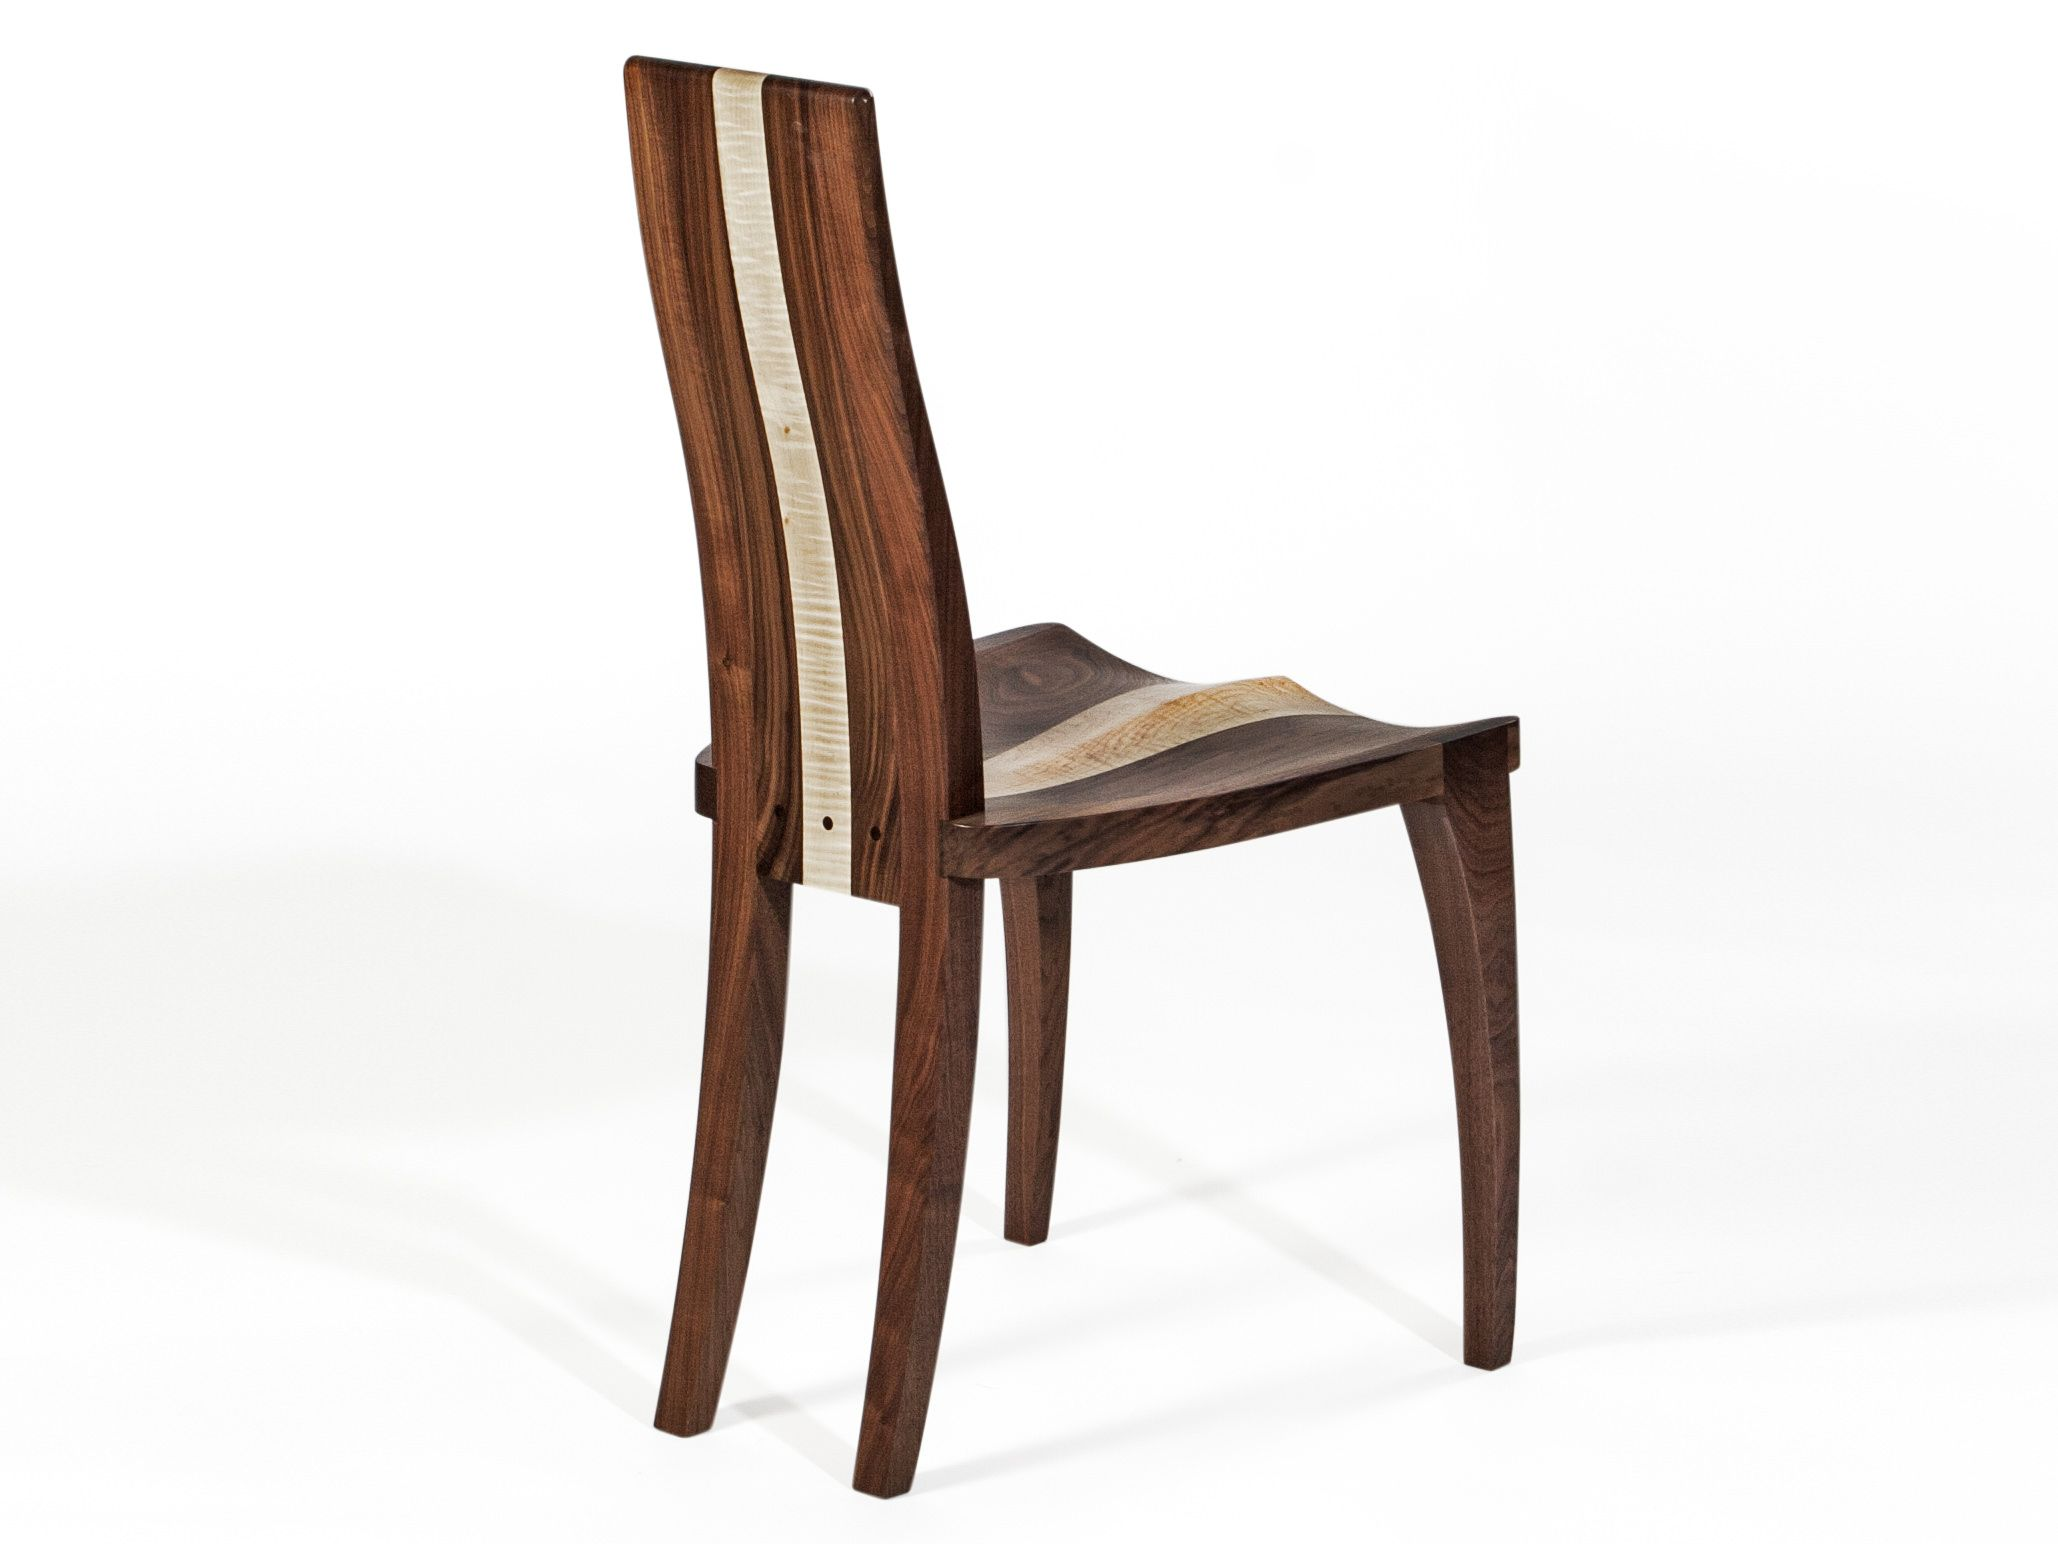 handmade wooden chairs leather zero gravity chair custom made dining modern solid wood walnut carved seat